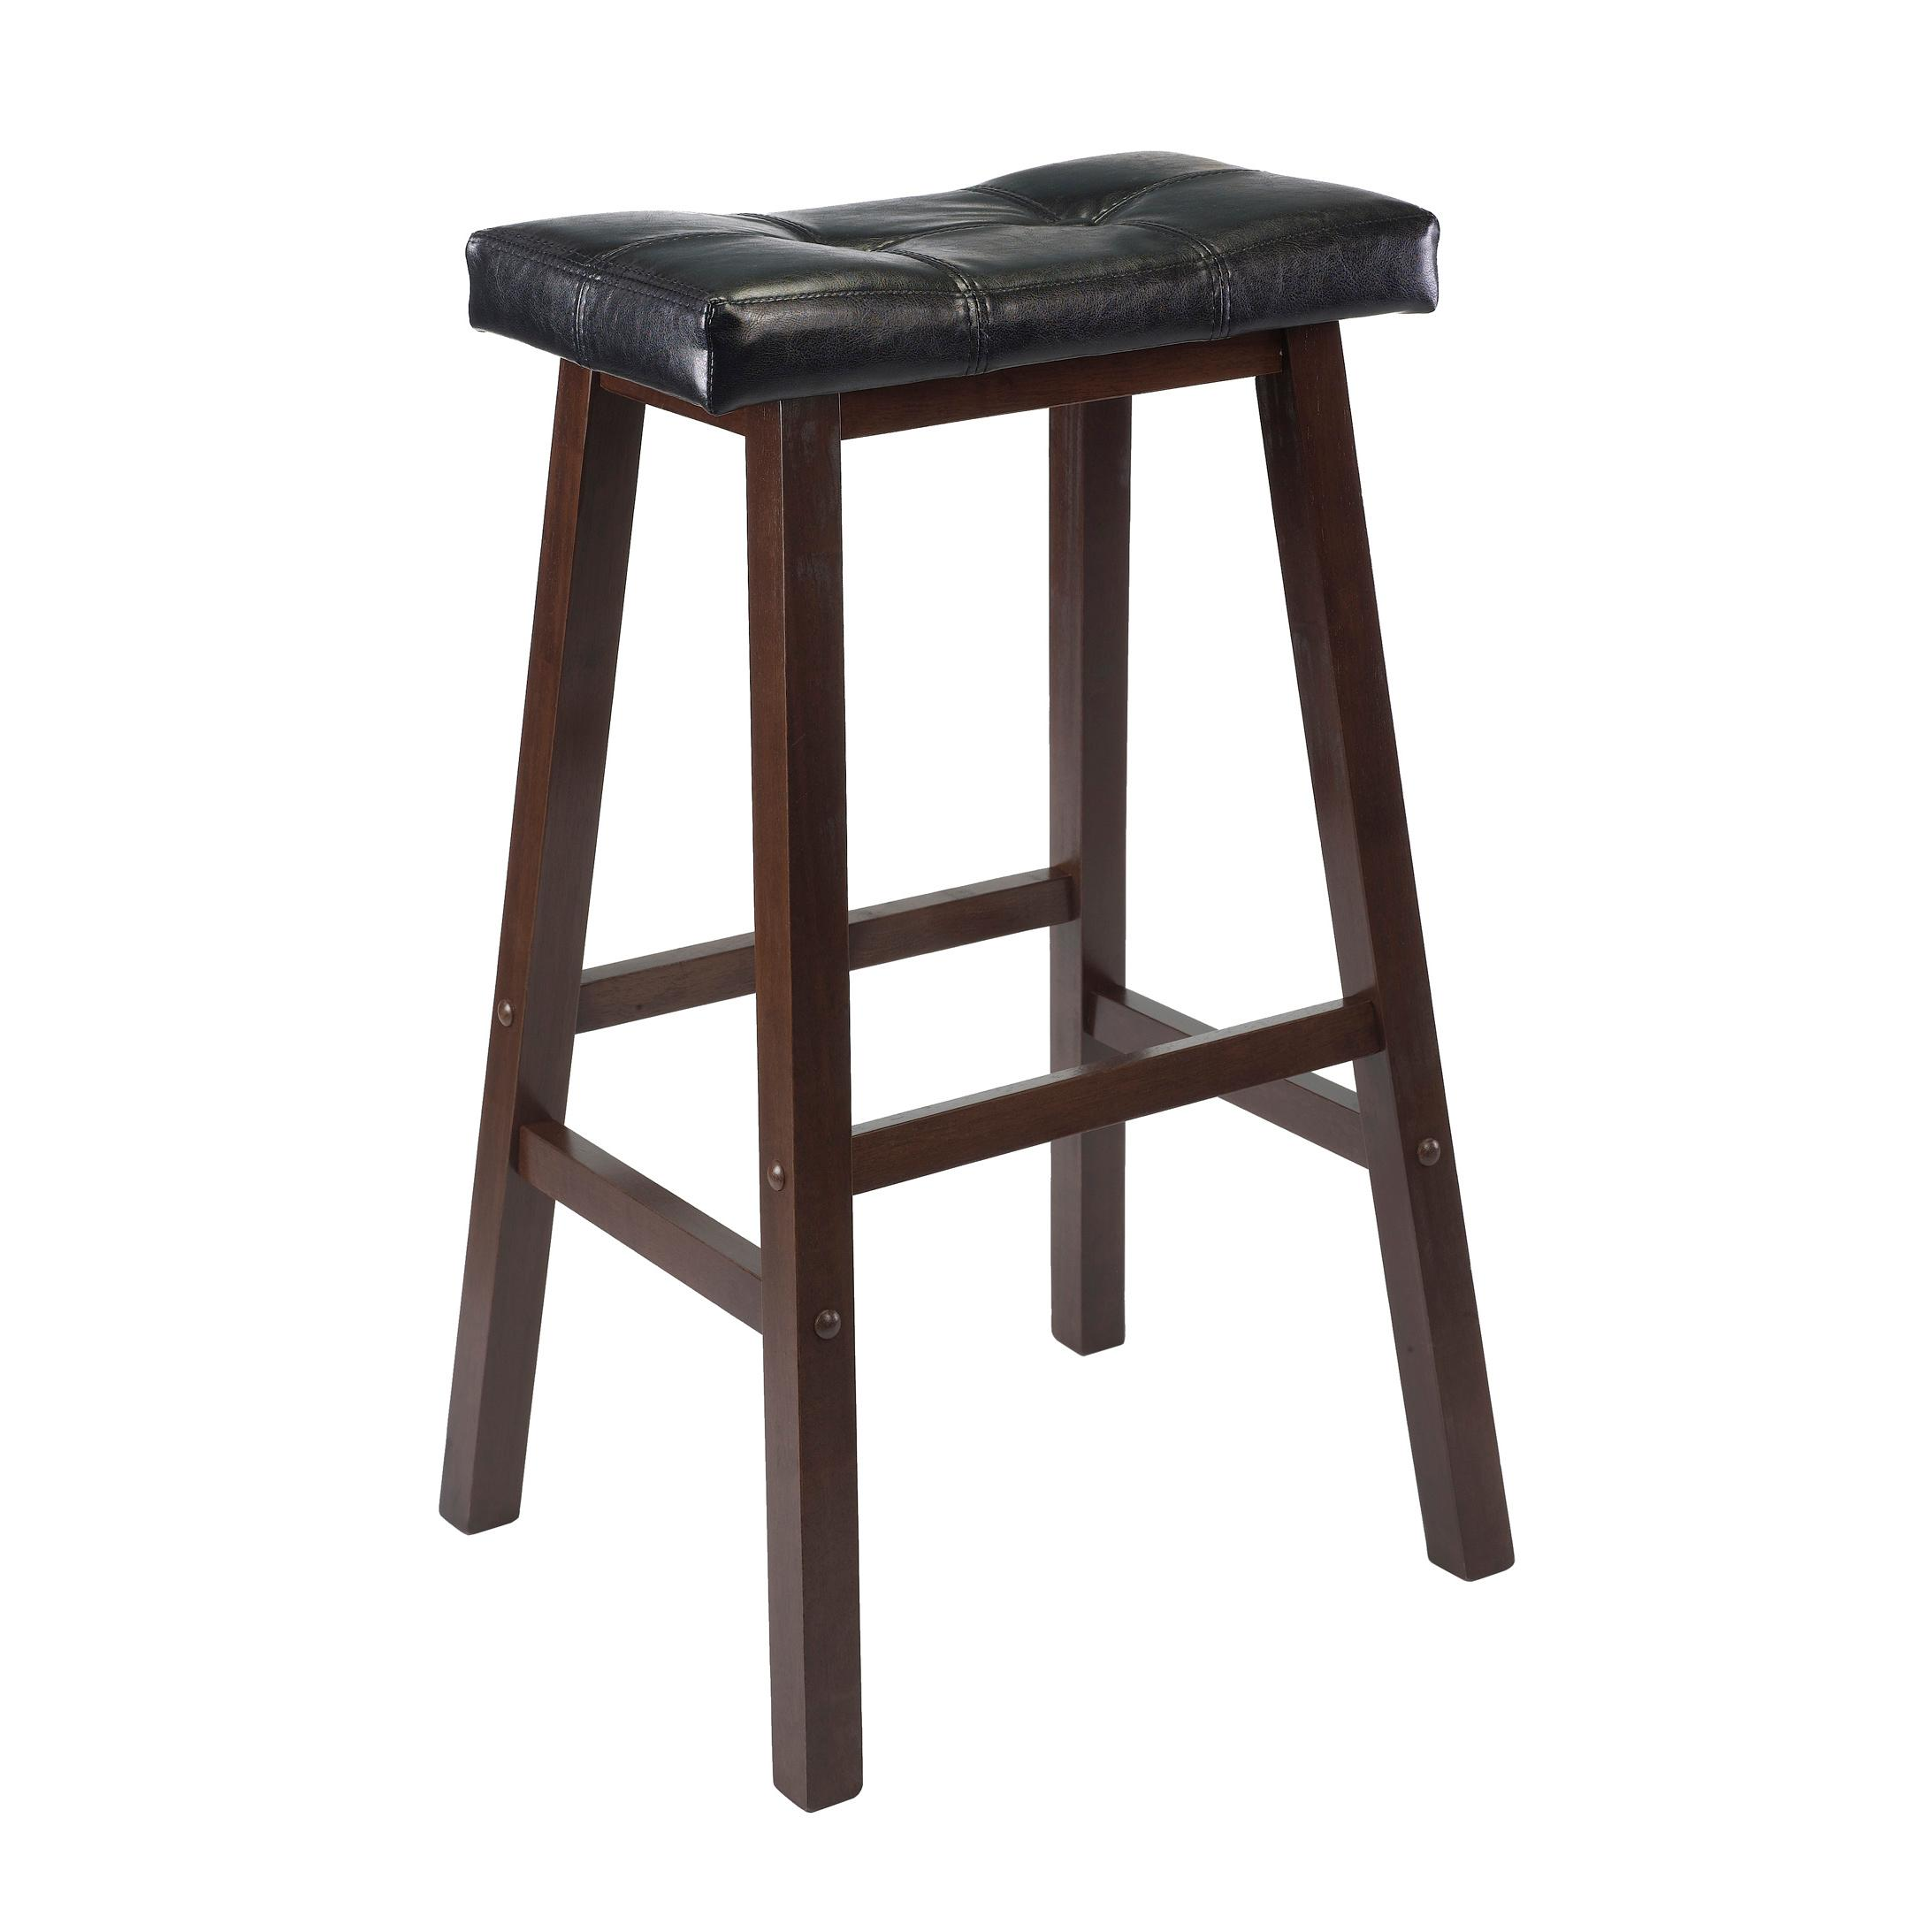 Winsome Wood Mona 29 Inch Cushion Saddle Seat Stool Walnut